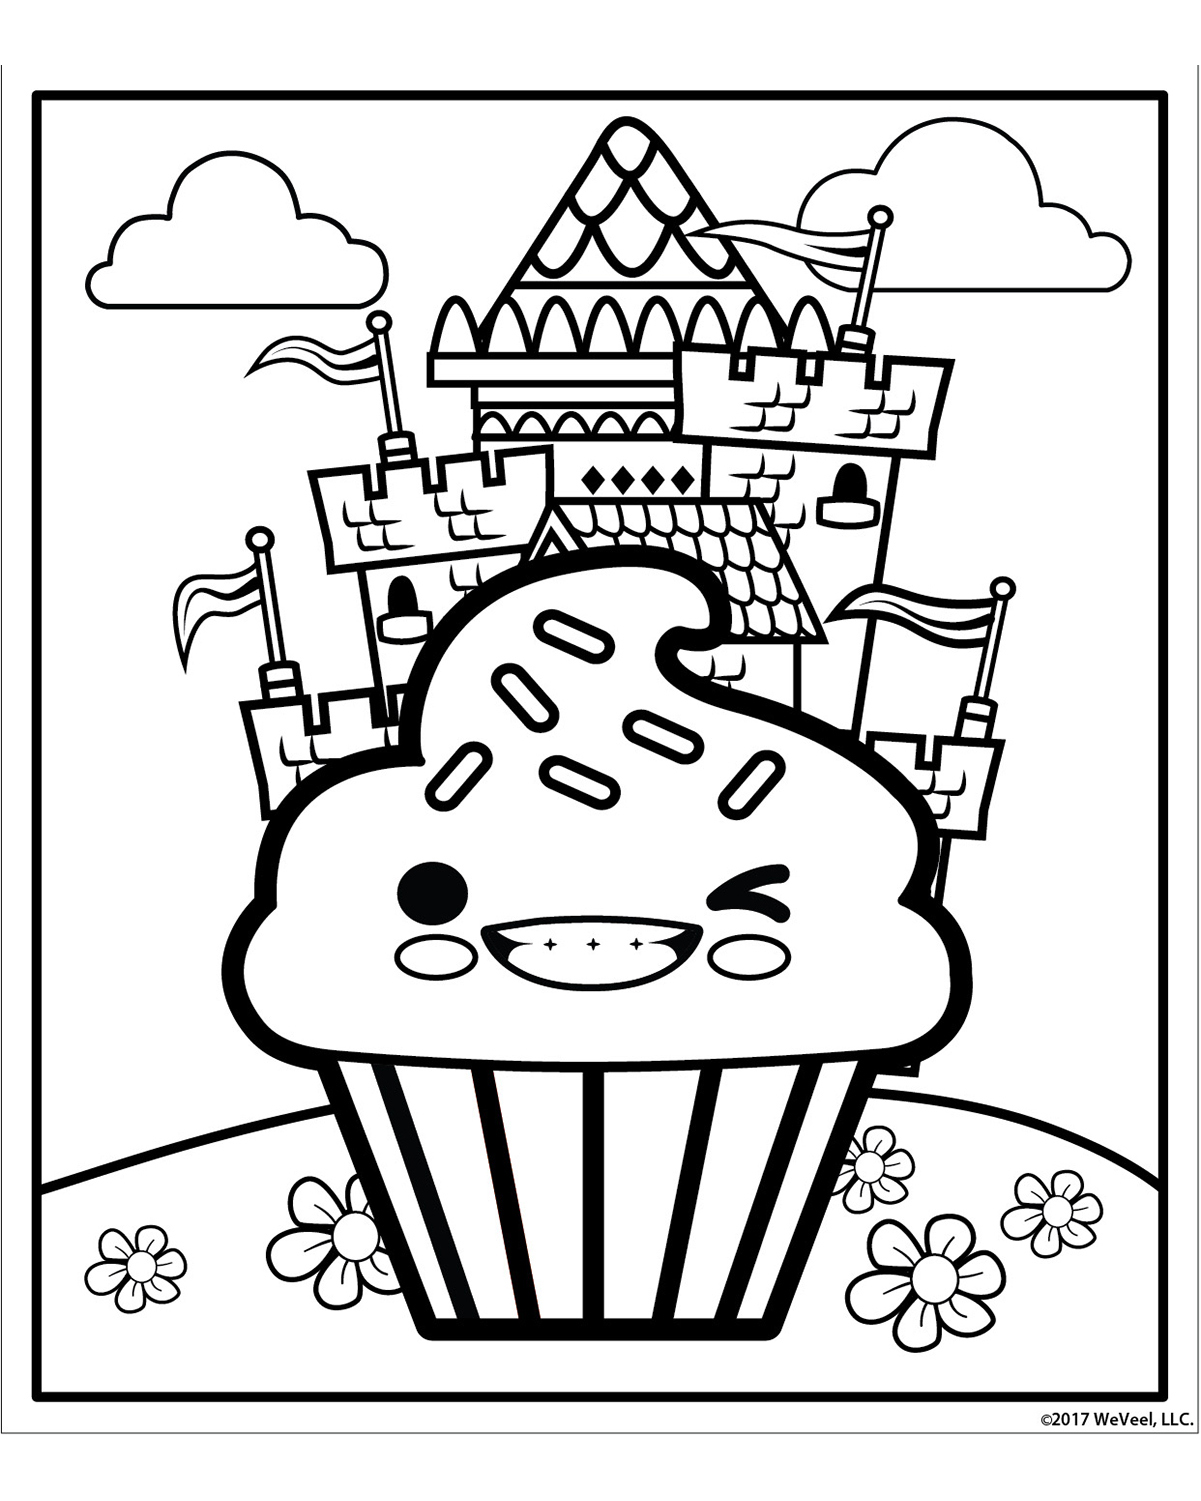 sugar rush coloring pages - photo#1